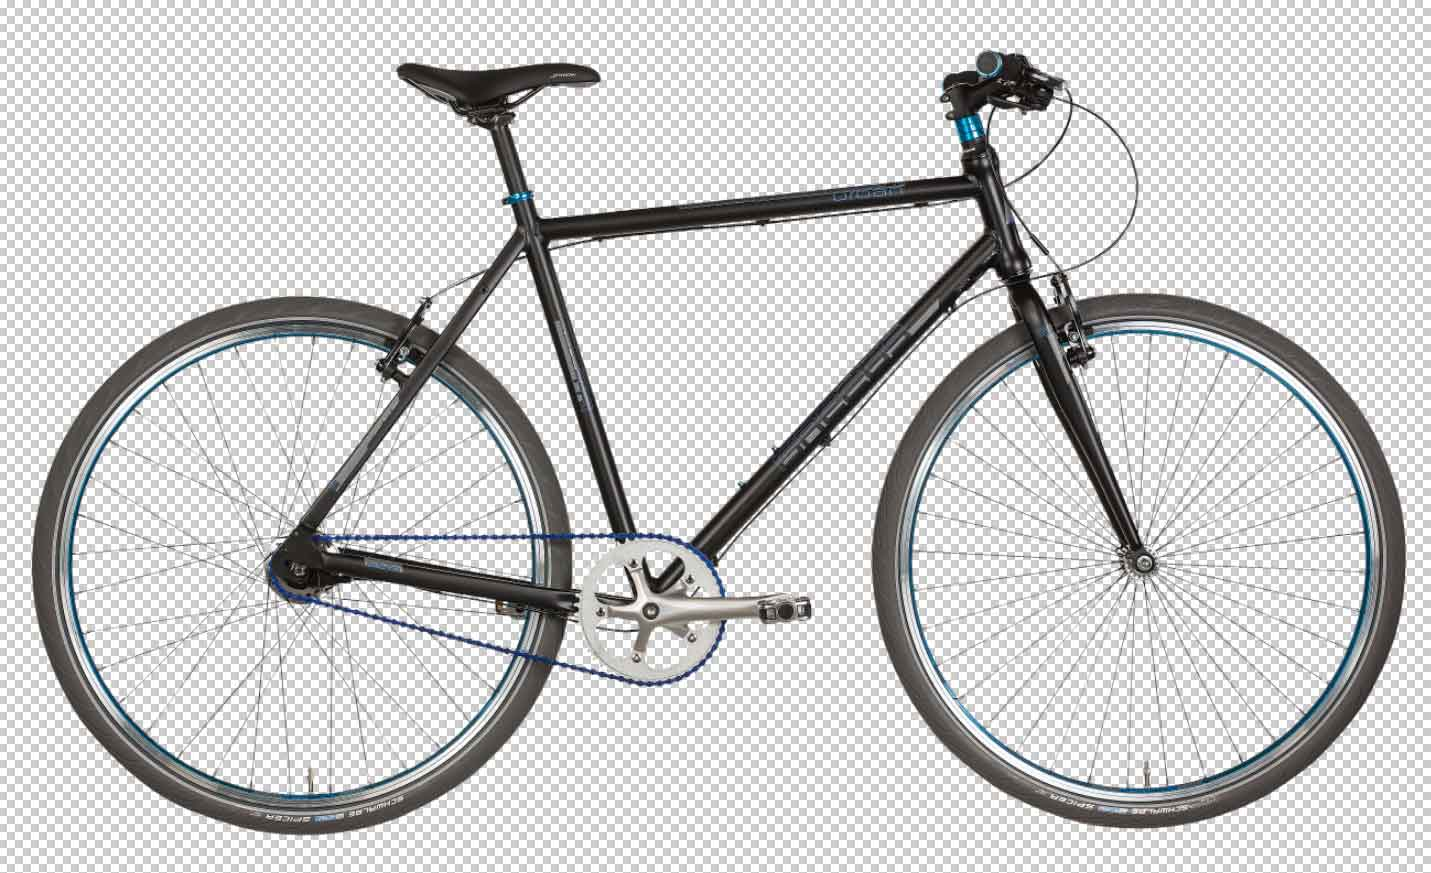 bicycle clipping path service